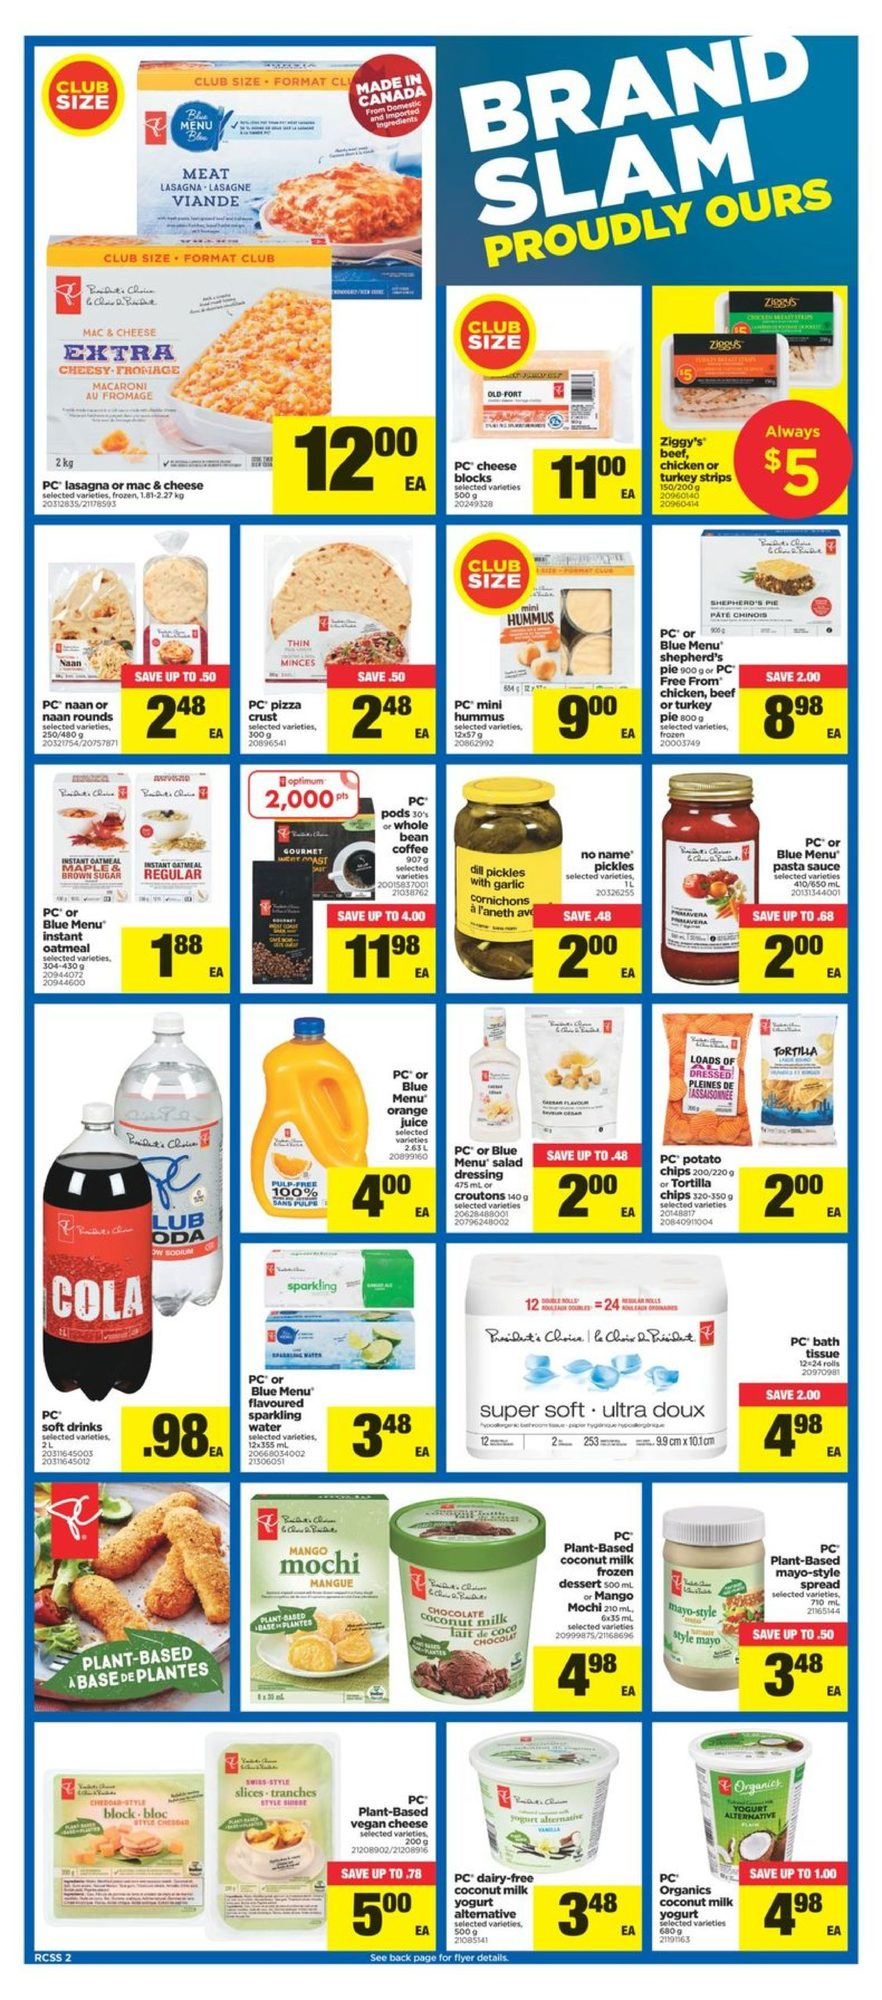 Real Canadian Superstore - Weekly Flyer Specials - Page 2